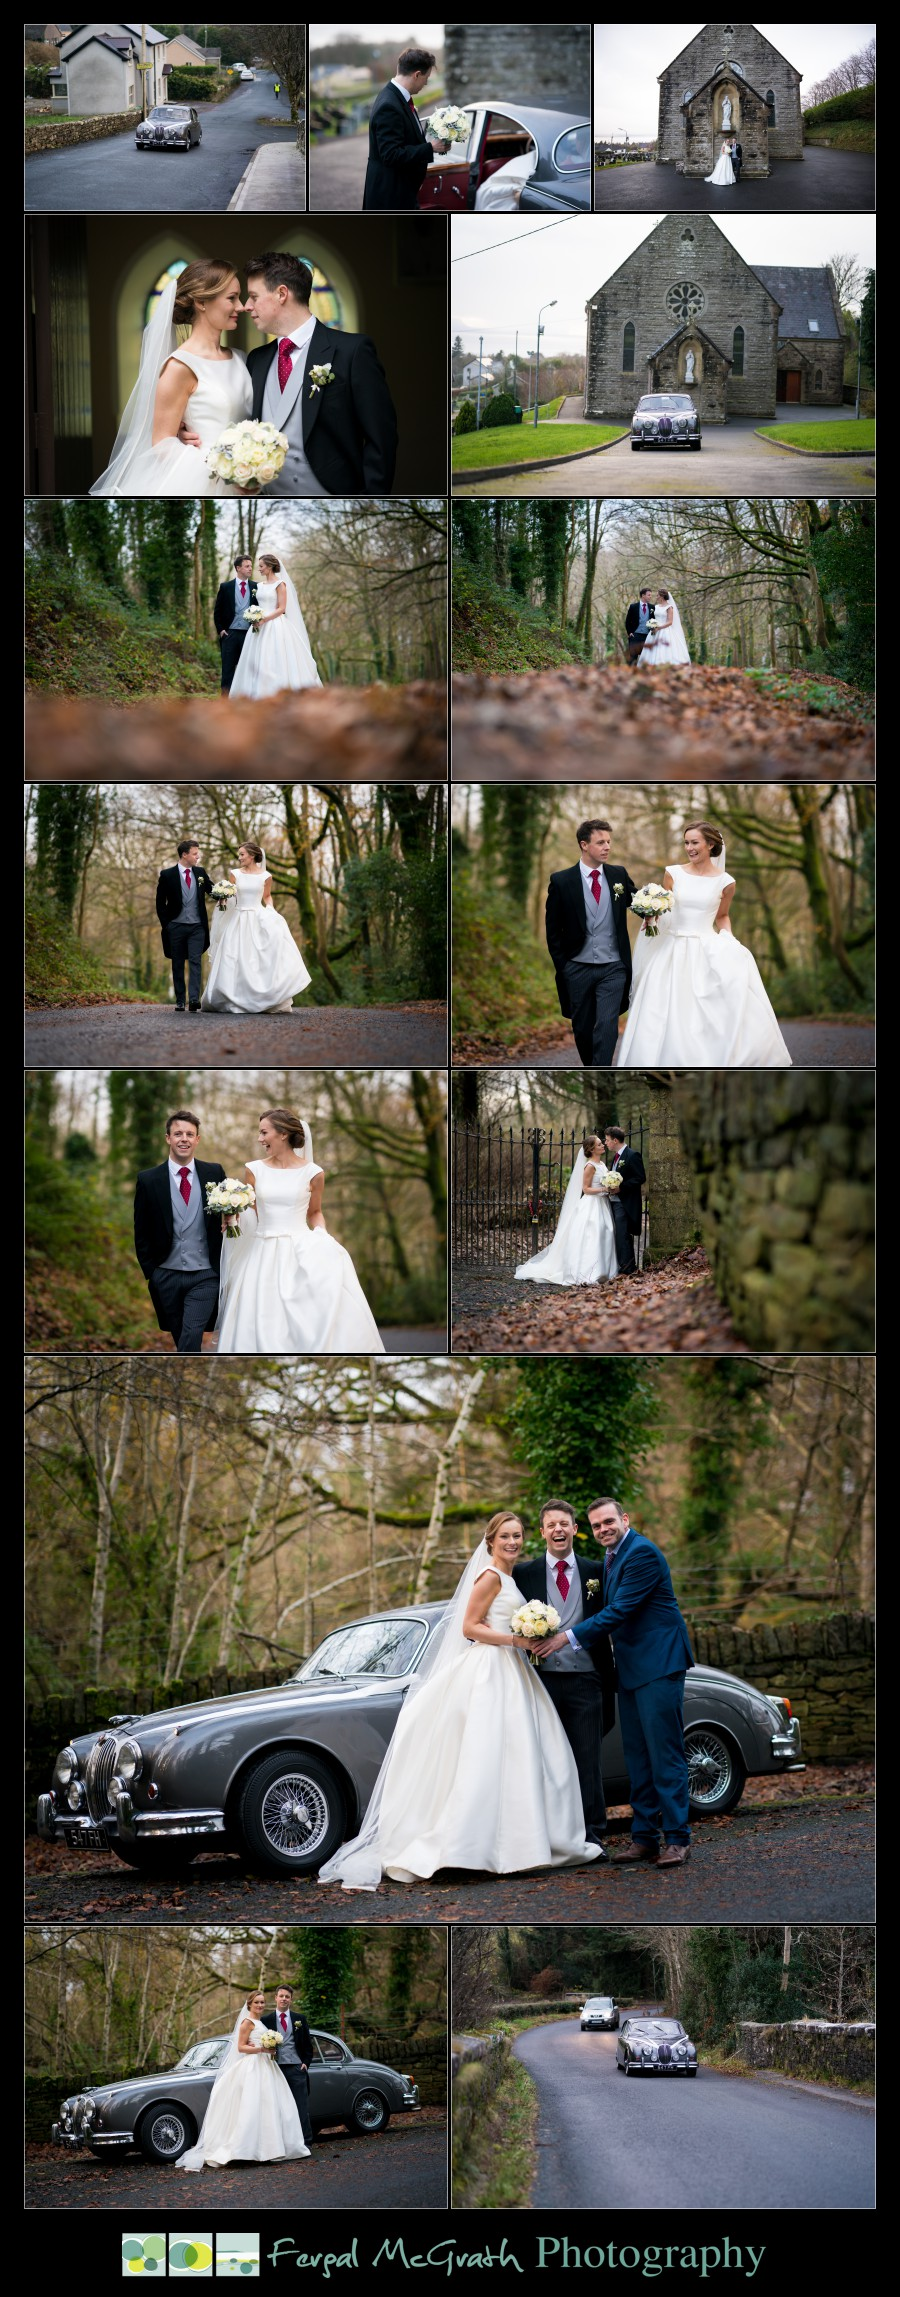 Harveys Point Hotel Winter Weddings bride and groom photos on a country lane in autumn